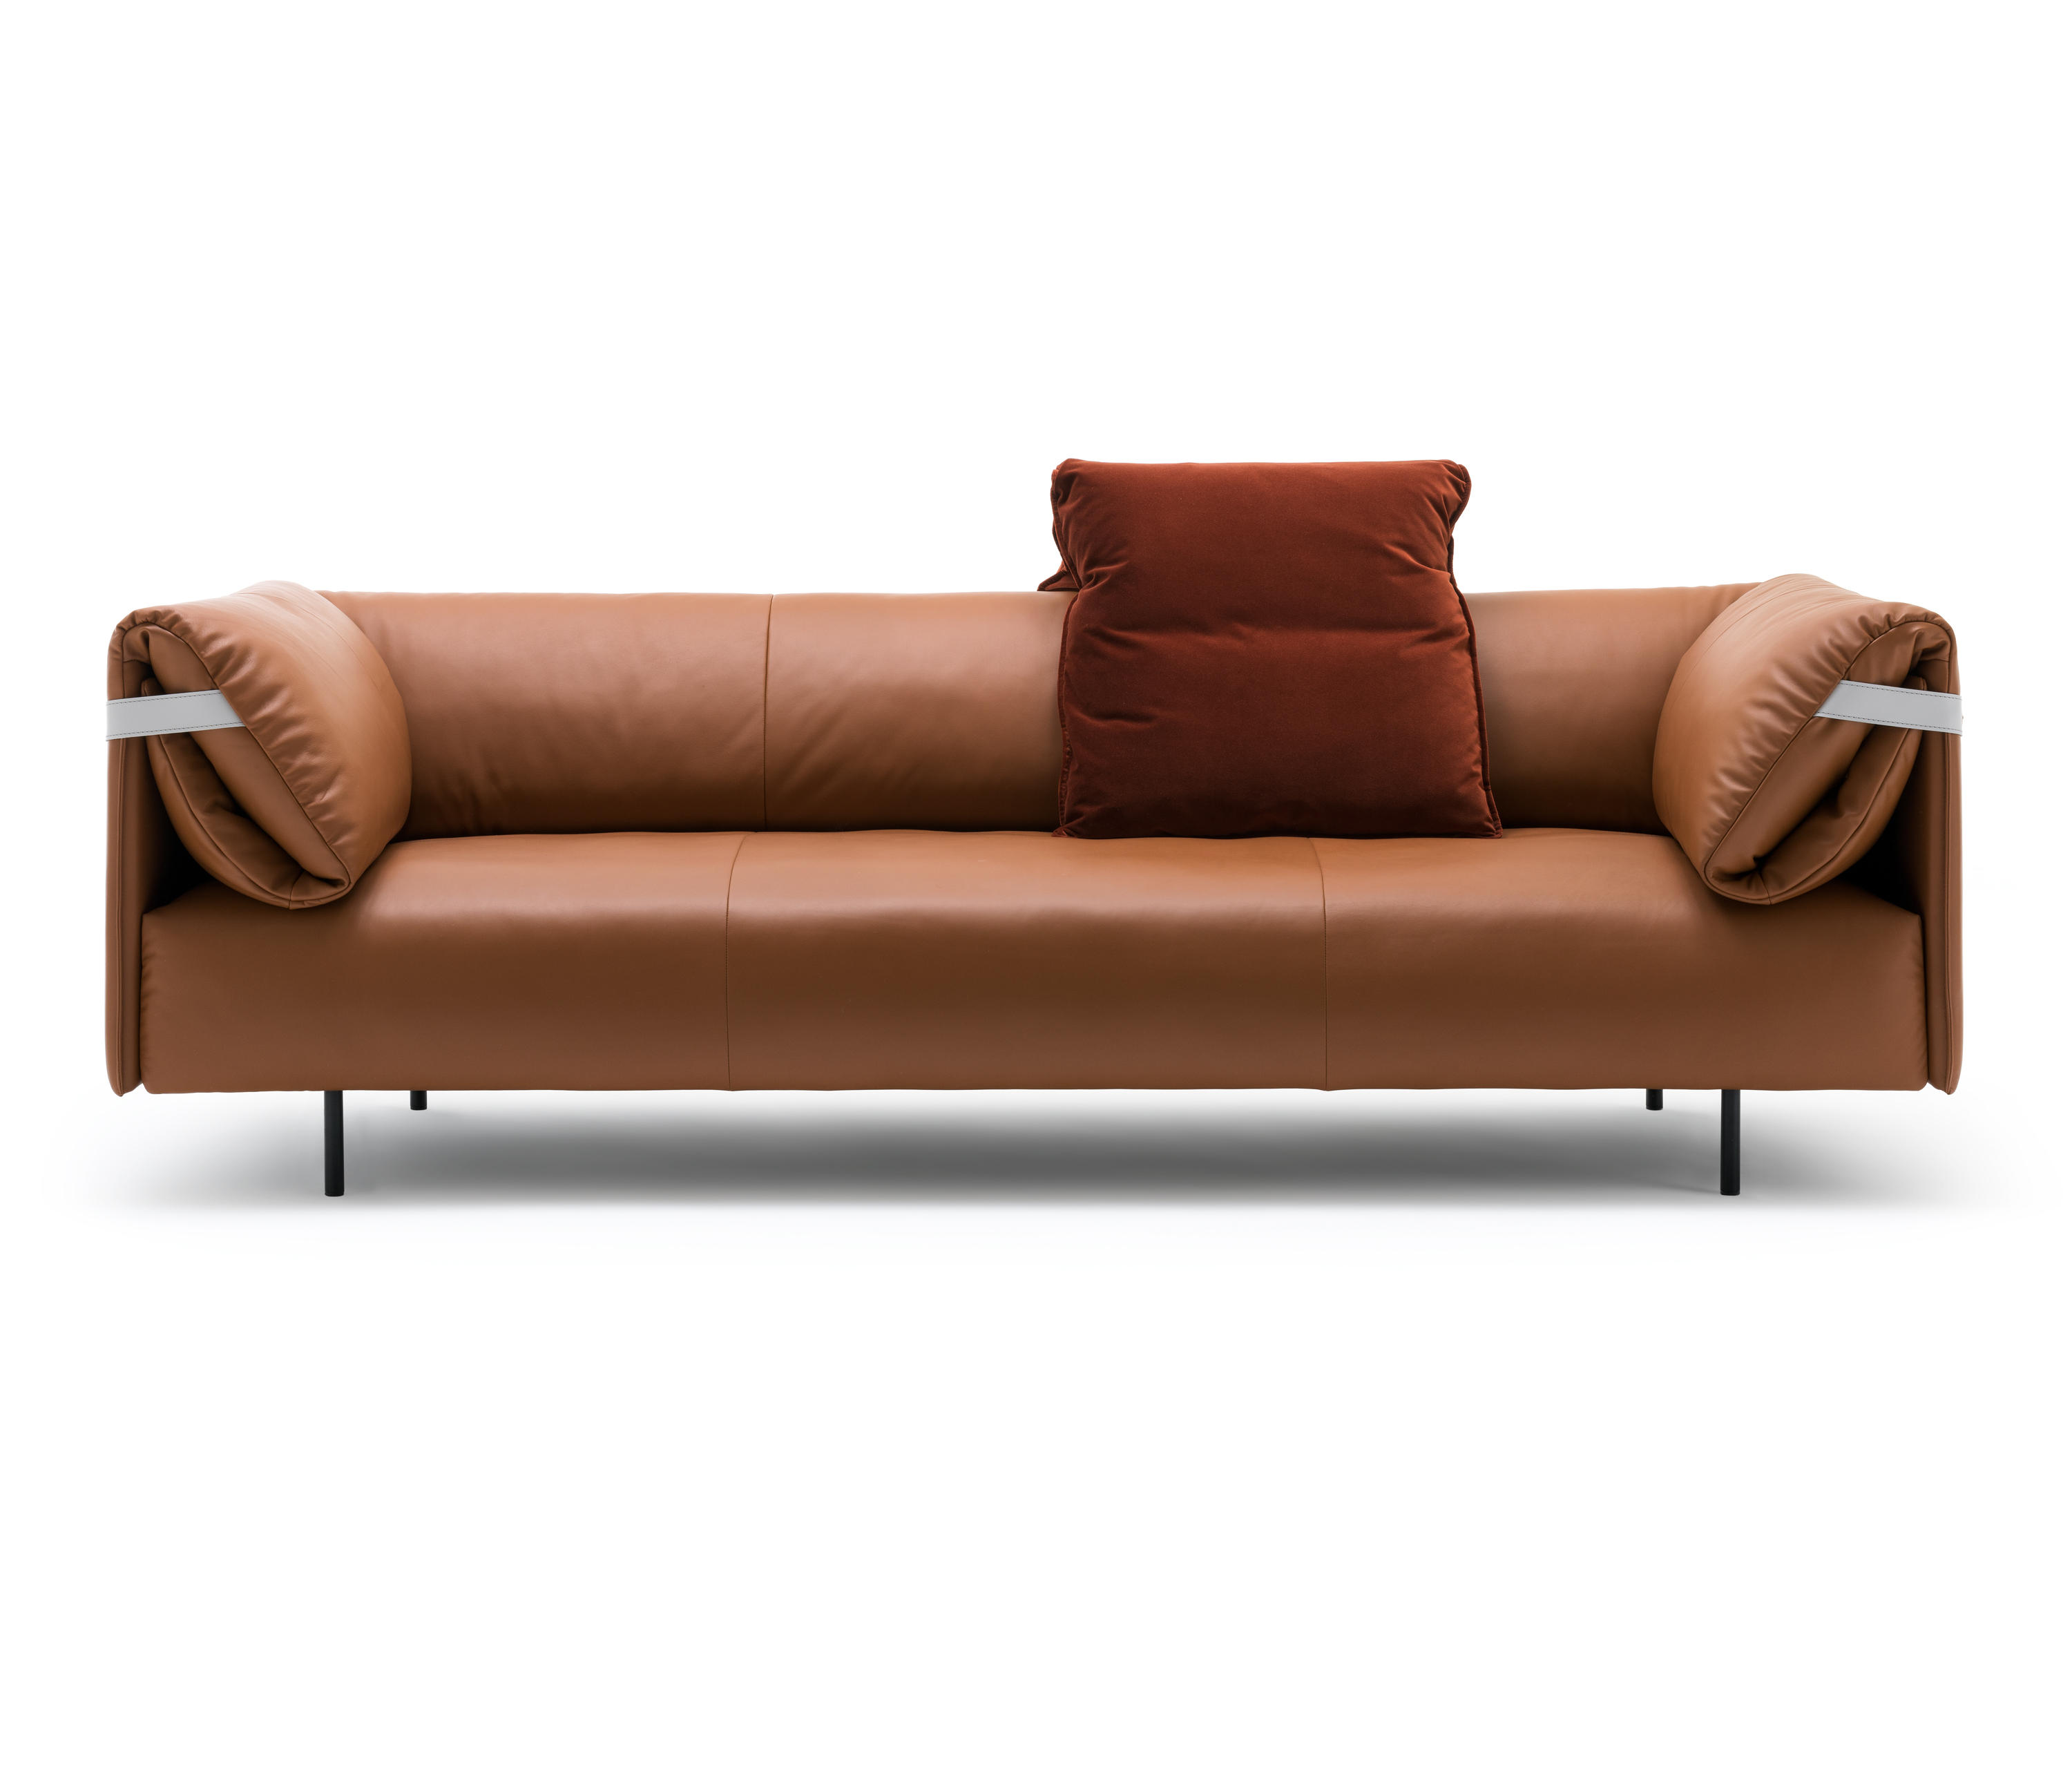 Benz Couch Rolf Benz Alma Sofas From Rolf Benz Architonic